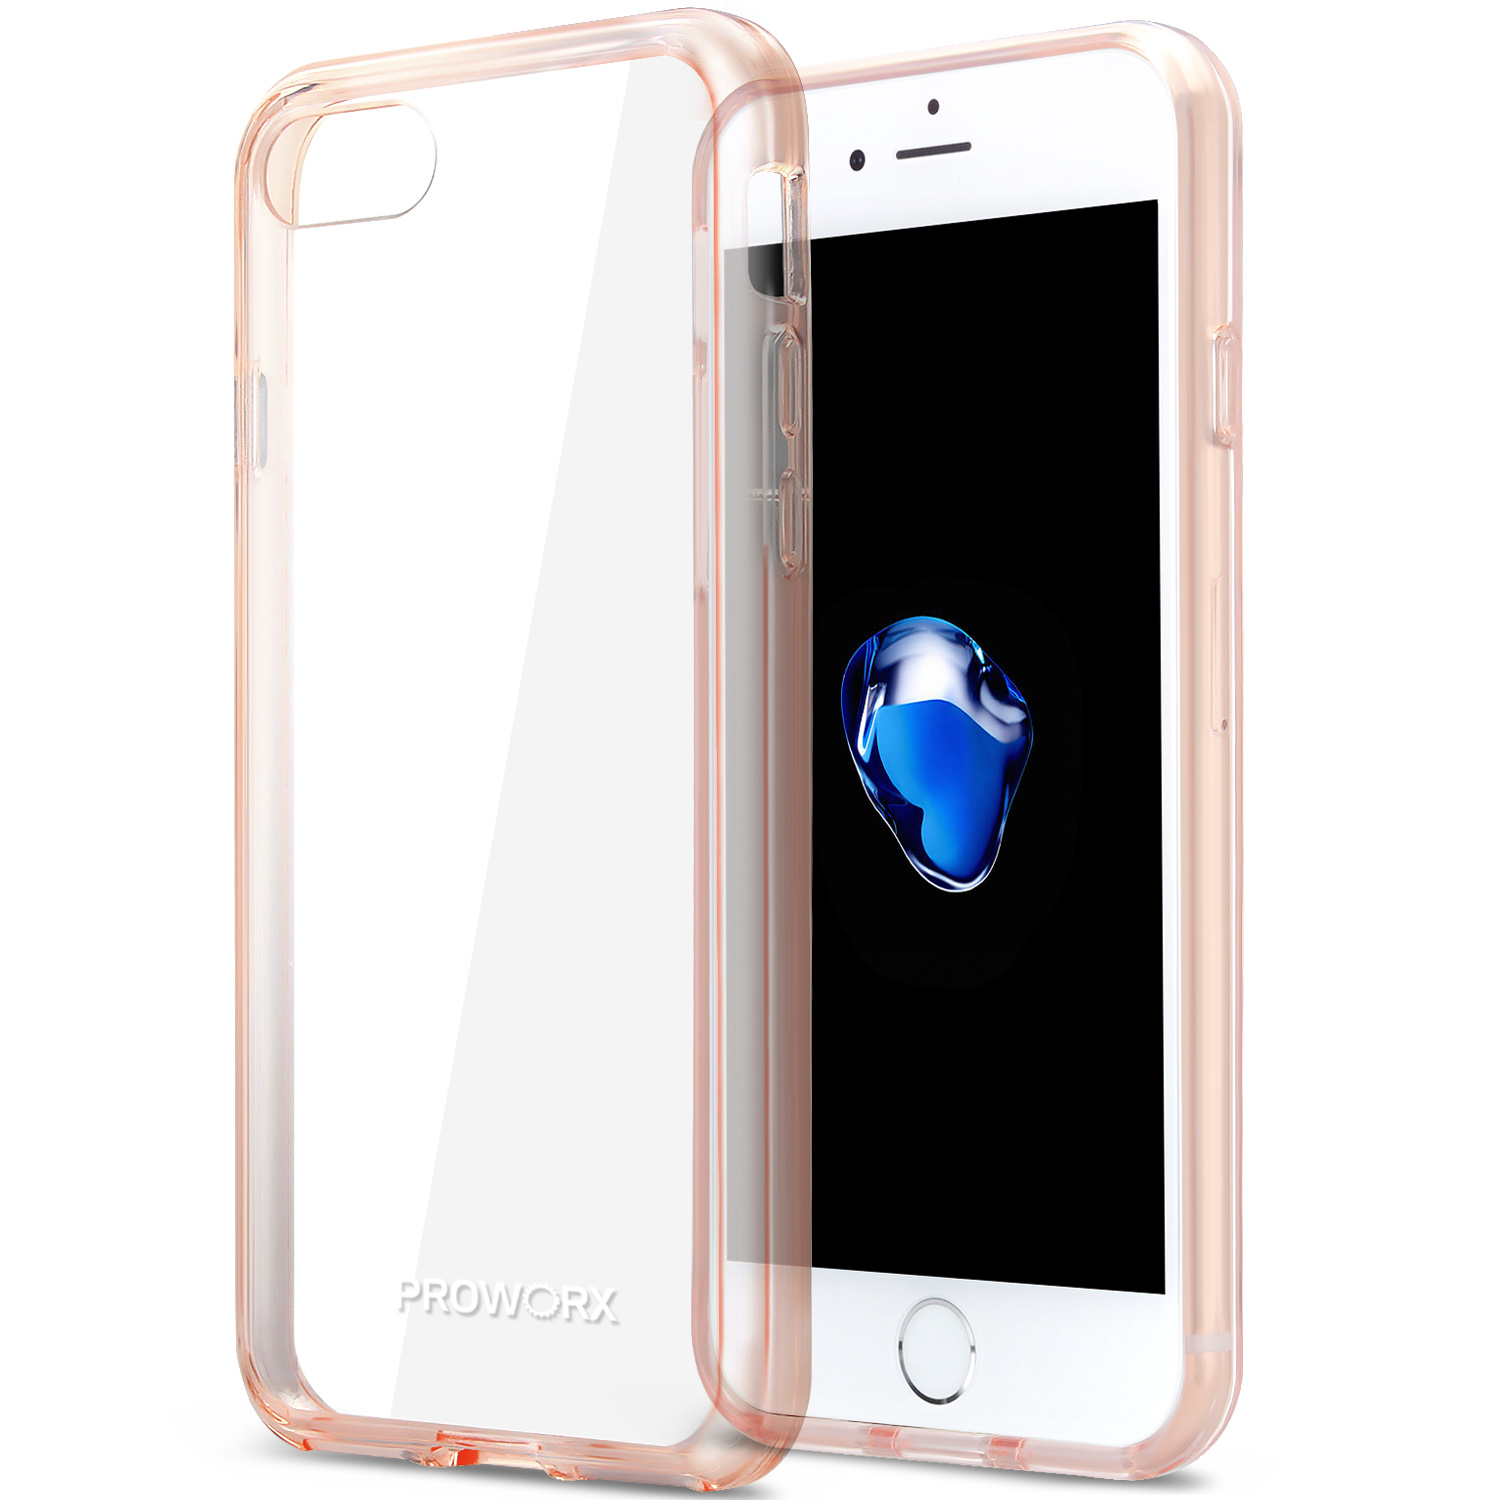 Apple iPhone 6 Rose Gold ProWorx Shock Absorption Case Bumper TPU & Anti-Scratch Clear Back Cover